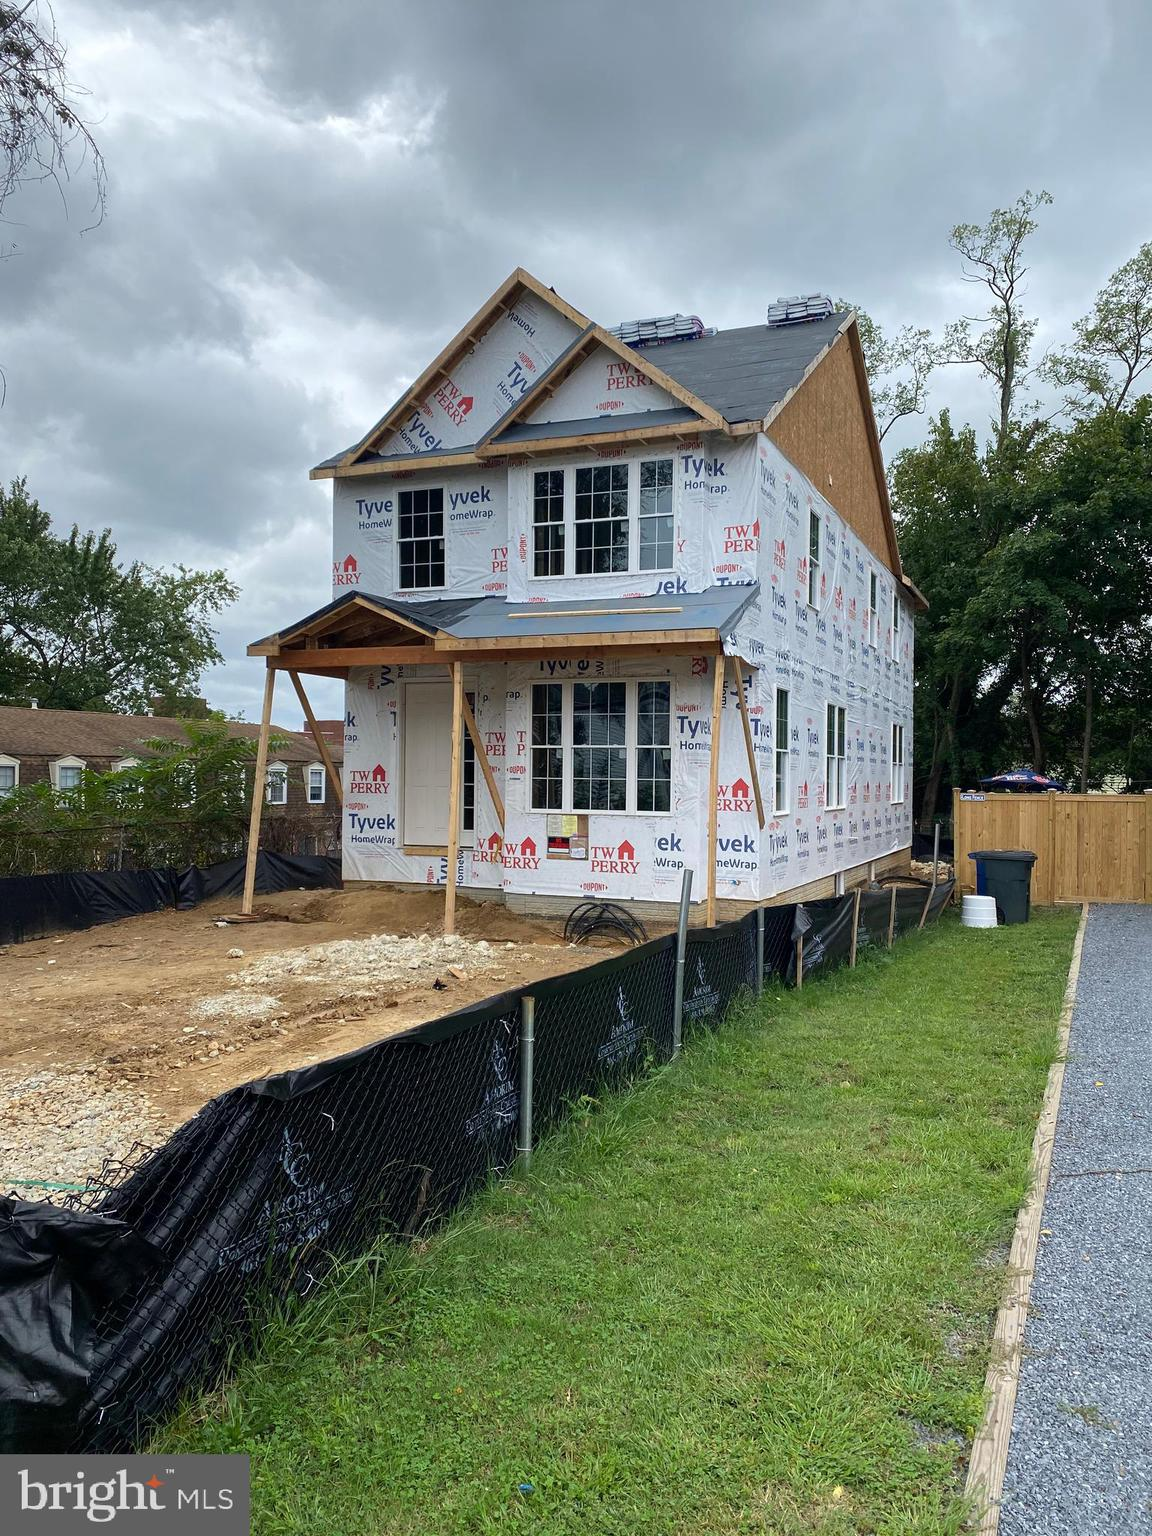 "New Construction in West Annapolis !!! Dont't let this one get away . 2000 square foot finished above grade with an additional 600 ft finished below grade . This 4 bed 3 full bath and 1 half bath home leaves no stone unturned . Options include 9' foot 1st floor ceilings complemented with custom tray 2nd floor master br has cathederal ceilings, 42 "" custom cabinets with quarts counter tops & Gourmet  Appliance package , Main level Wide plank Hardwood floors ,Custom  Oak stairs and handrails,Custom Moldings , Gas fire place, Gas cook top , Front porch & rear deck plus aFenced rear yard. And all this just a few blocks from DTA & The Naval Academy . WEST ANNAPOLIS SCHOOL DISTRICT still time to make final selections."